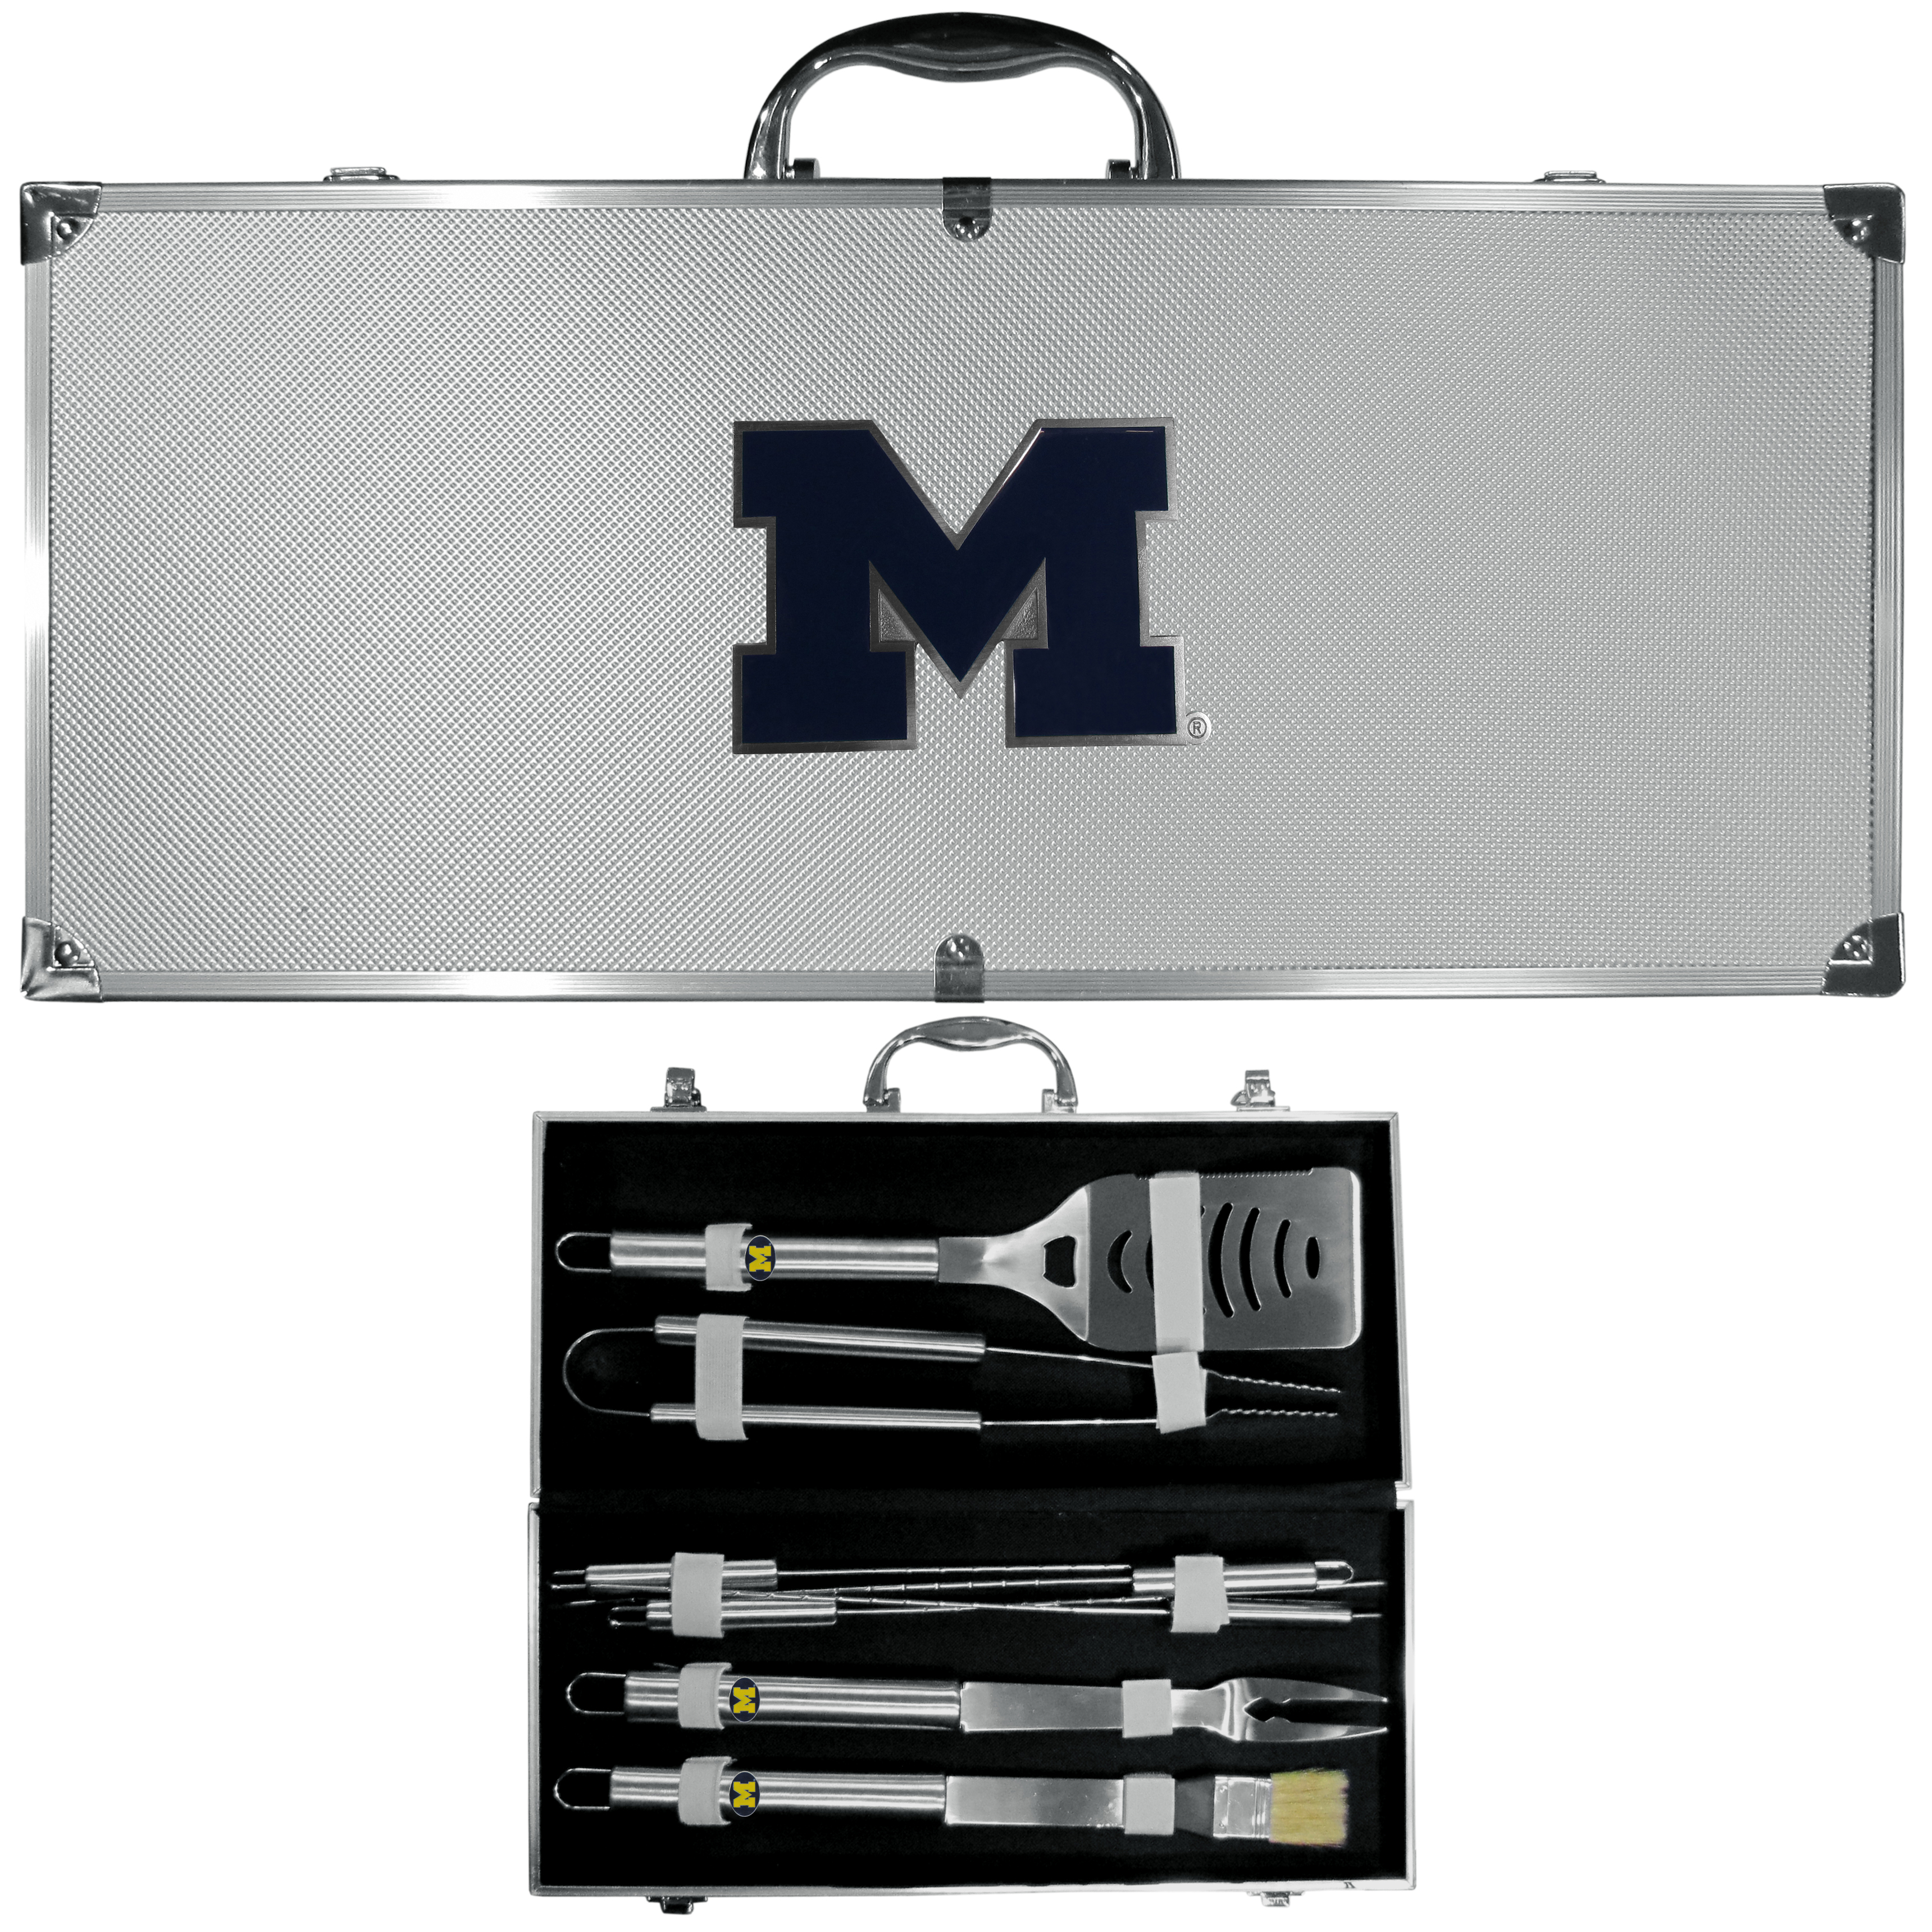 Michigan Wolverines 8 pc Stainless Steel BBQ Set w/Metal Case - Our 8 pc BBQ set includes a spatula with knife edge, grill fork, tongs, basting brush and 4 skewers. The tools are approximately 19 inch long and have sturdy stainless steel handles. The aluminum carrying case features a metal carved Michigan Wolverinesemblem with enameled finish.